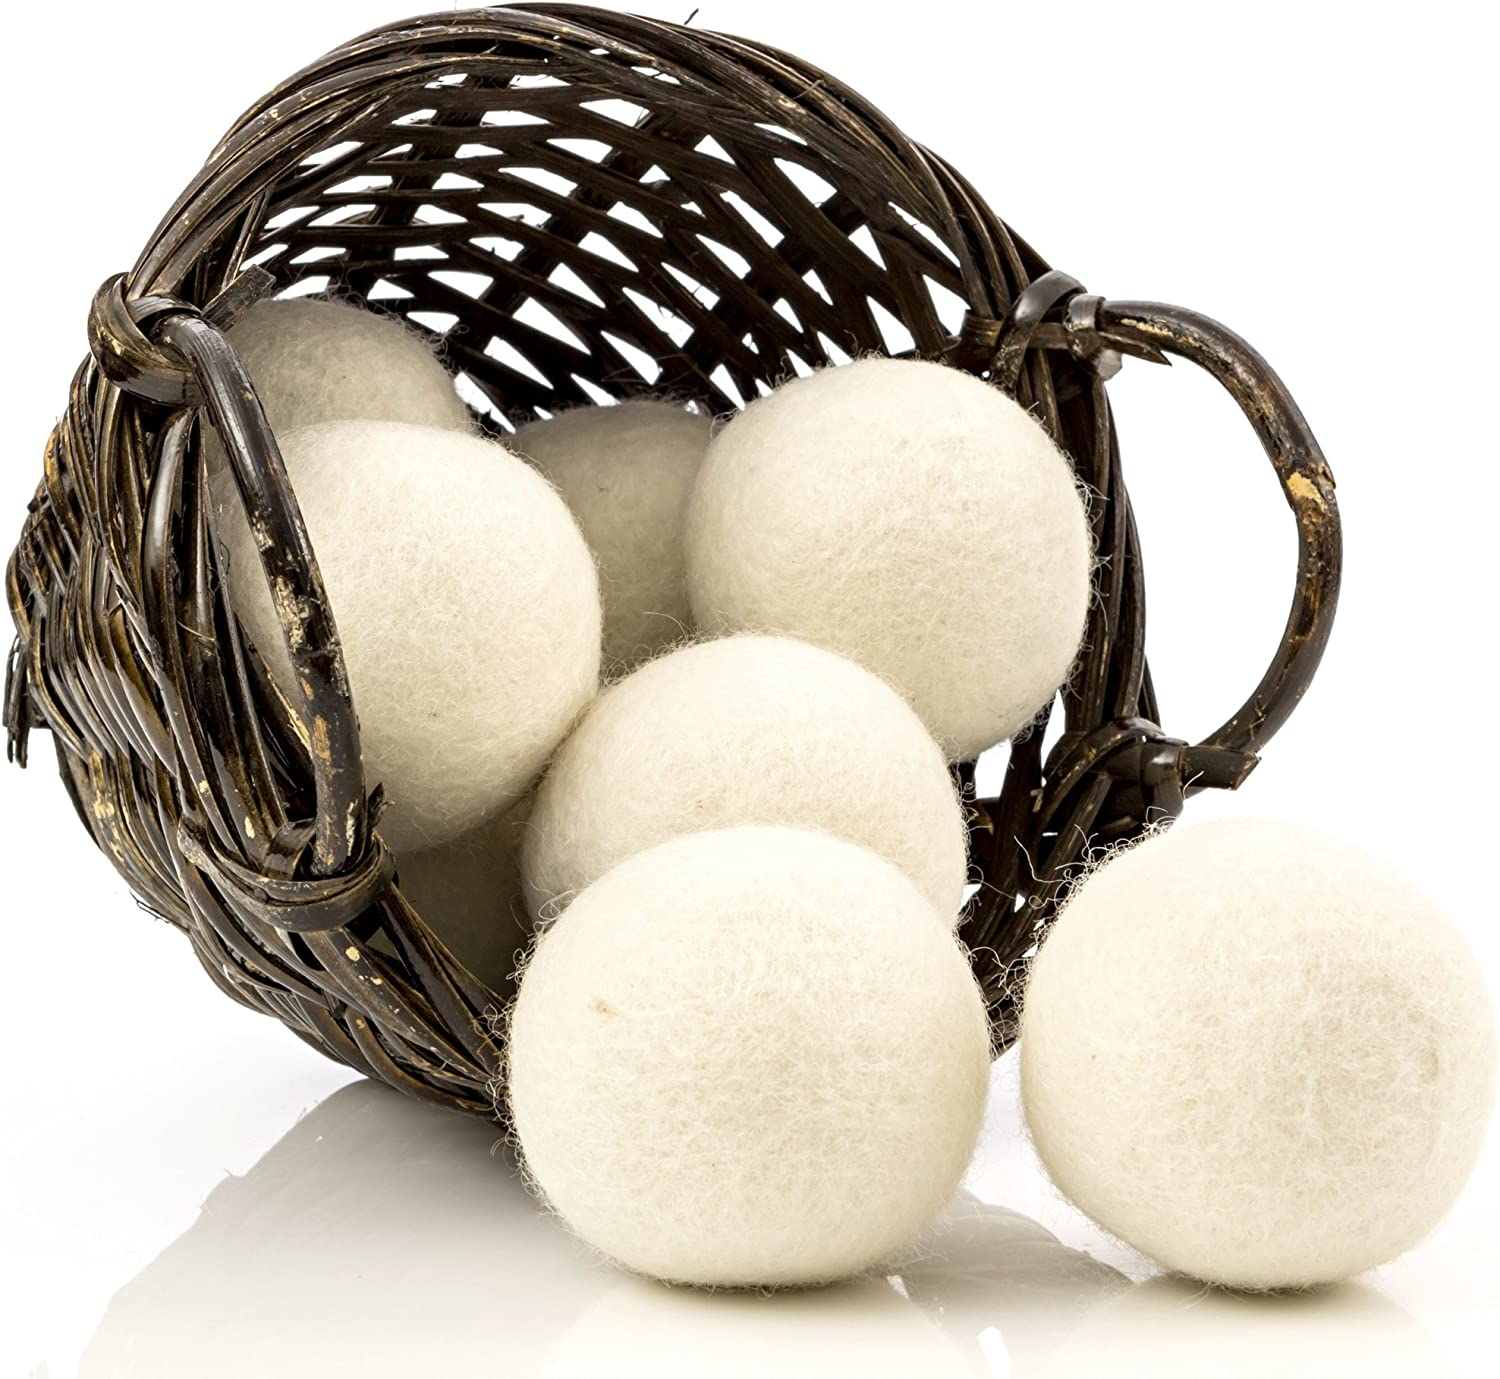 Organic Wool Dryer Balls, 8-Pack — Natural Ecofriendly Fabric Softener — Reusable Dryer Sheets for Infants — Soft and Gentle on Clothes & Skin